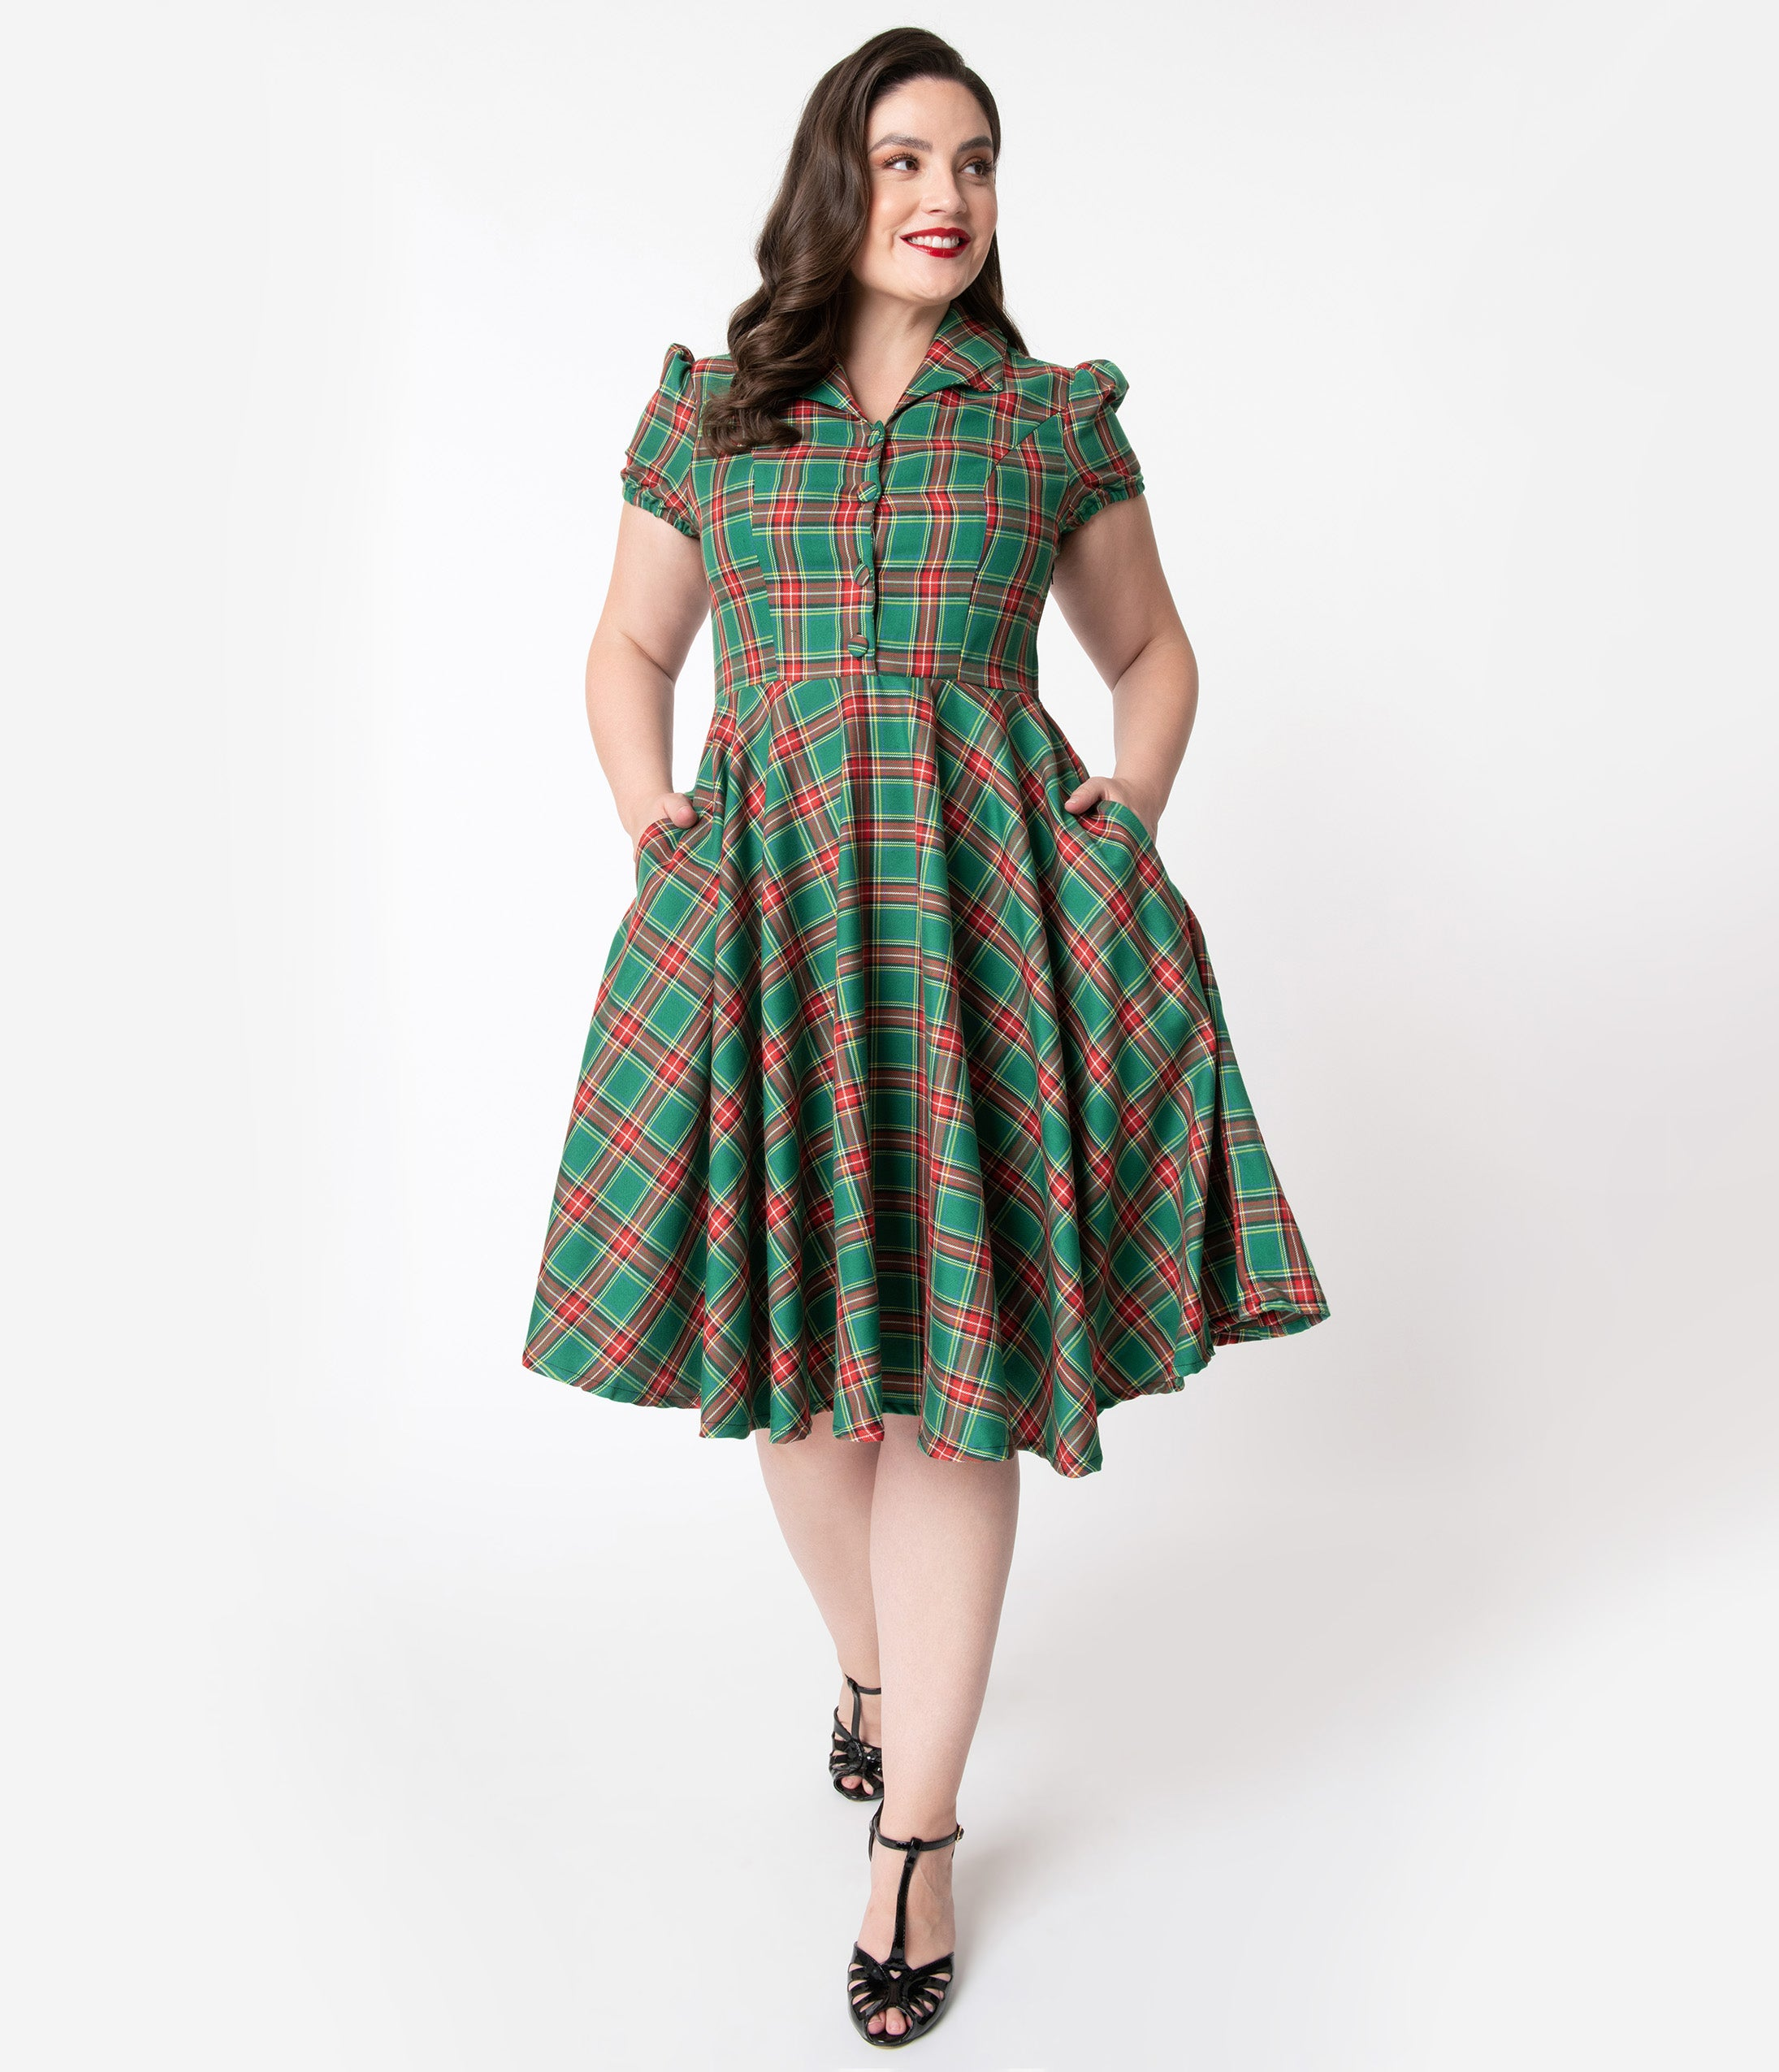 1940s Plus Size Fashion: Style Advice from 1940s to Today Plus Size 1950S Style Red  Green Holiday Plaid Mona Swing Dress $78.00 AT vintagedancer.com